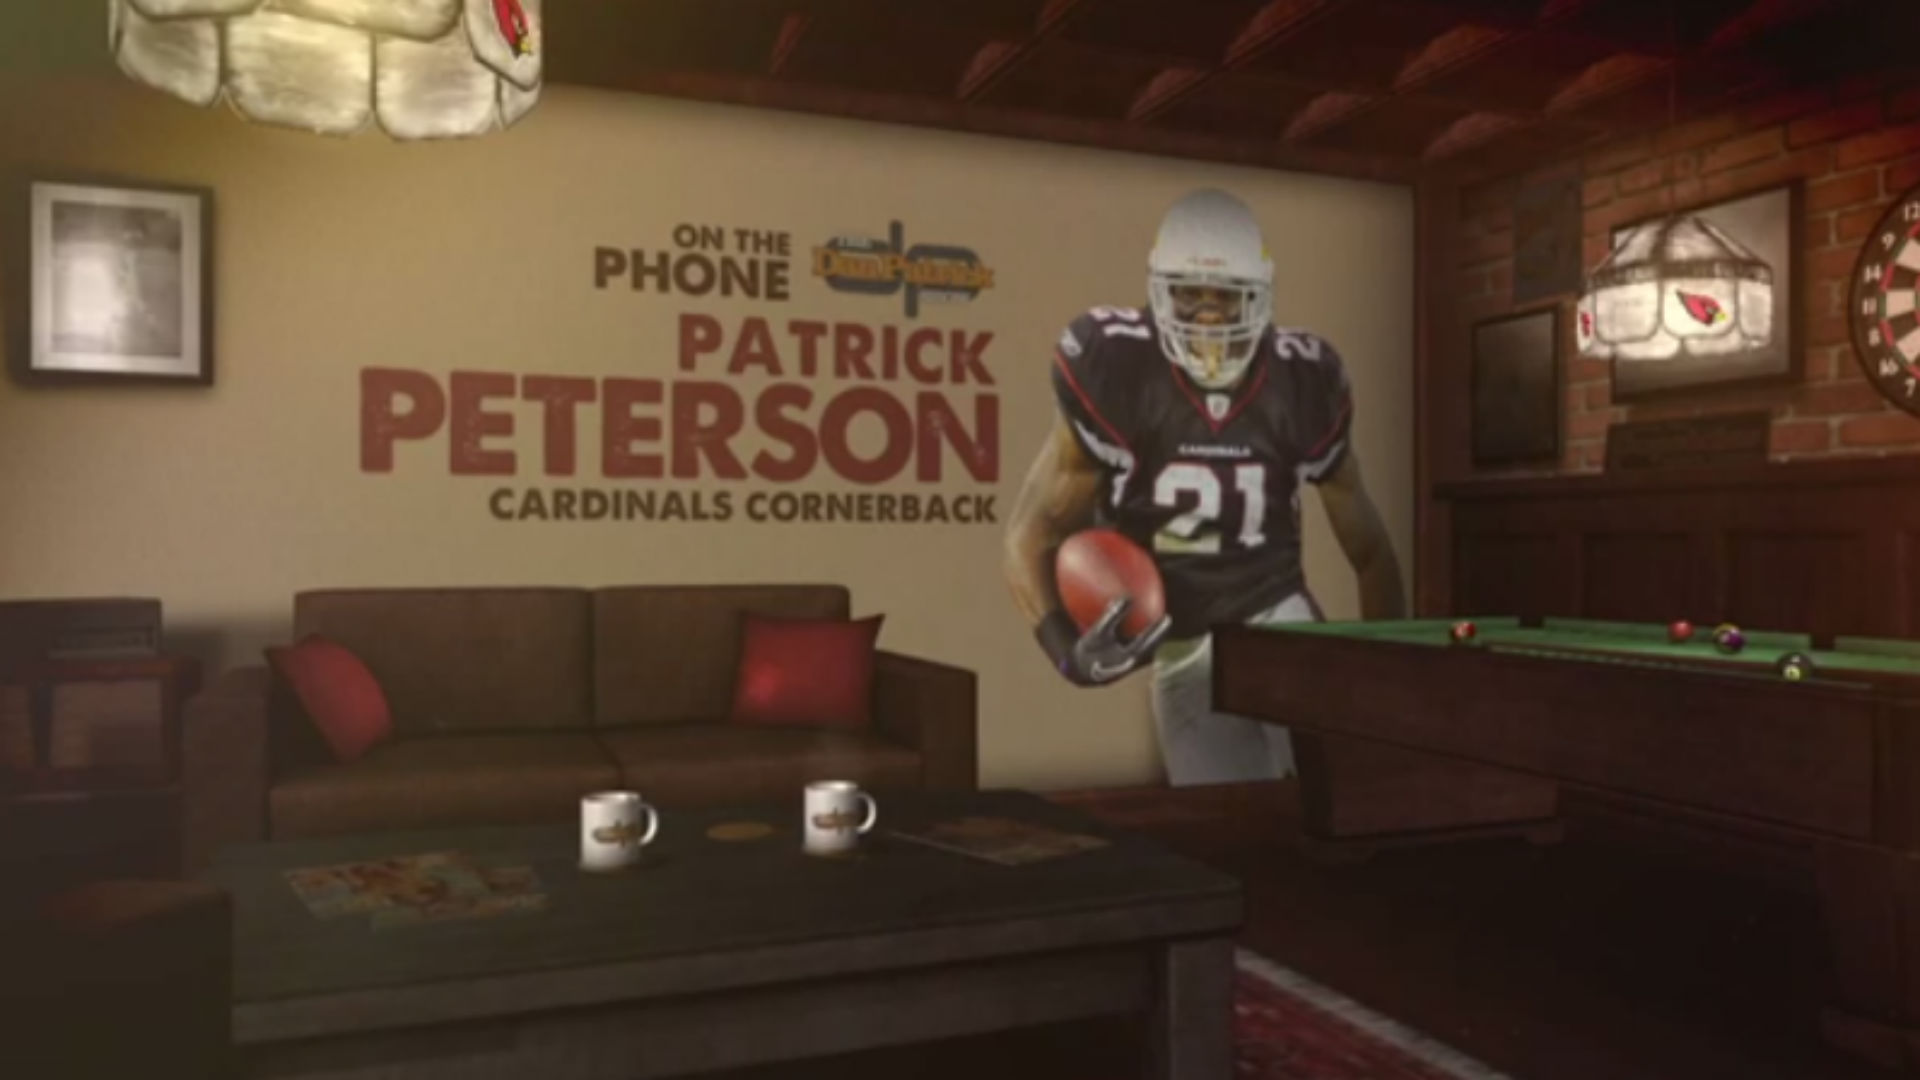 Patrick-Peterson-111914-FTR-YouTube.jpg